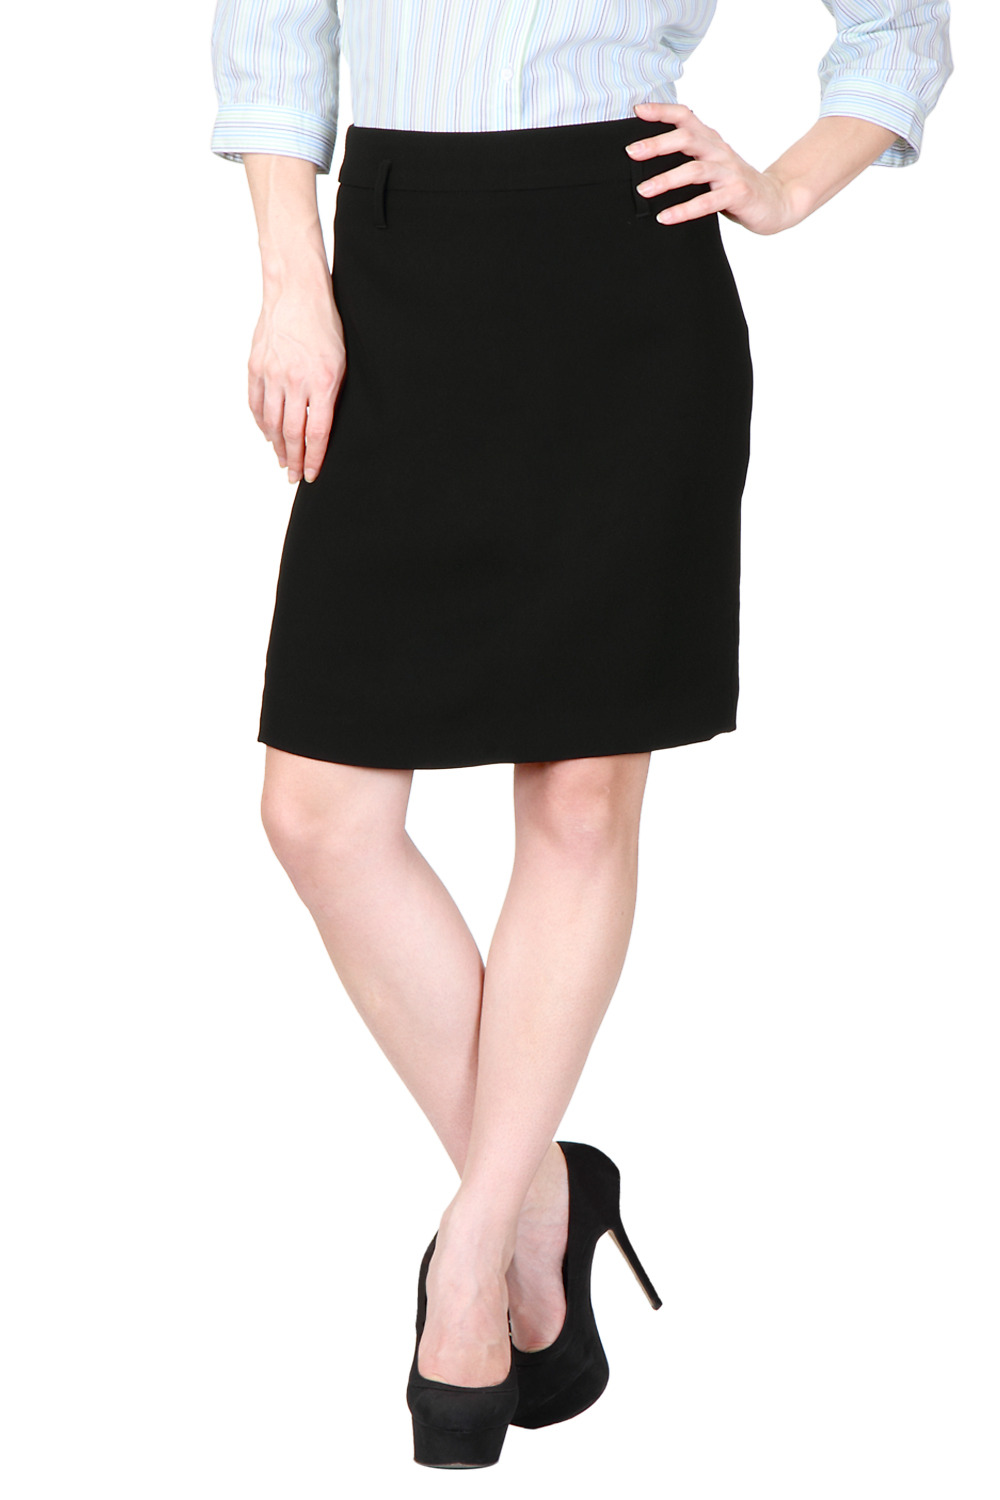 Buy Allen Solly Skirts Online for Women | Allensolly.com